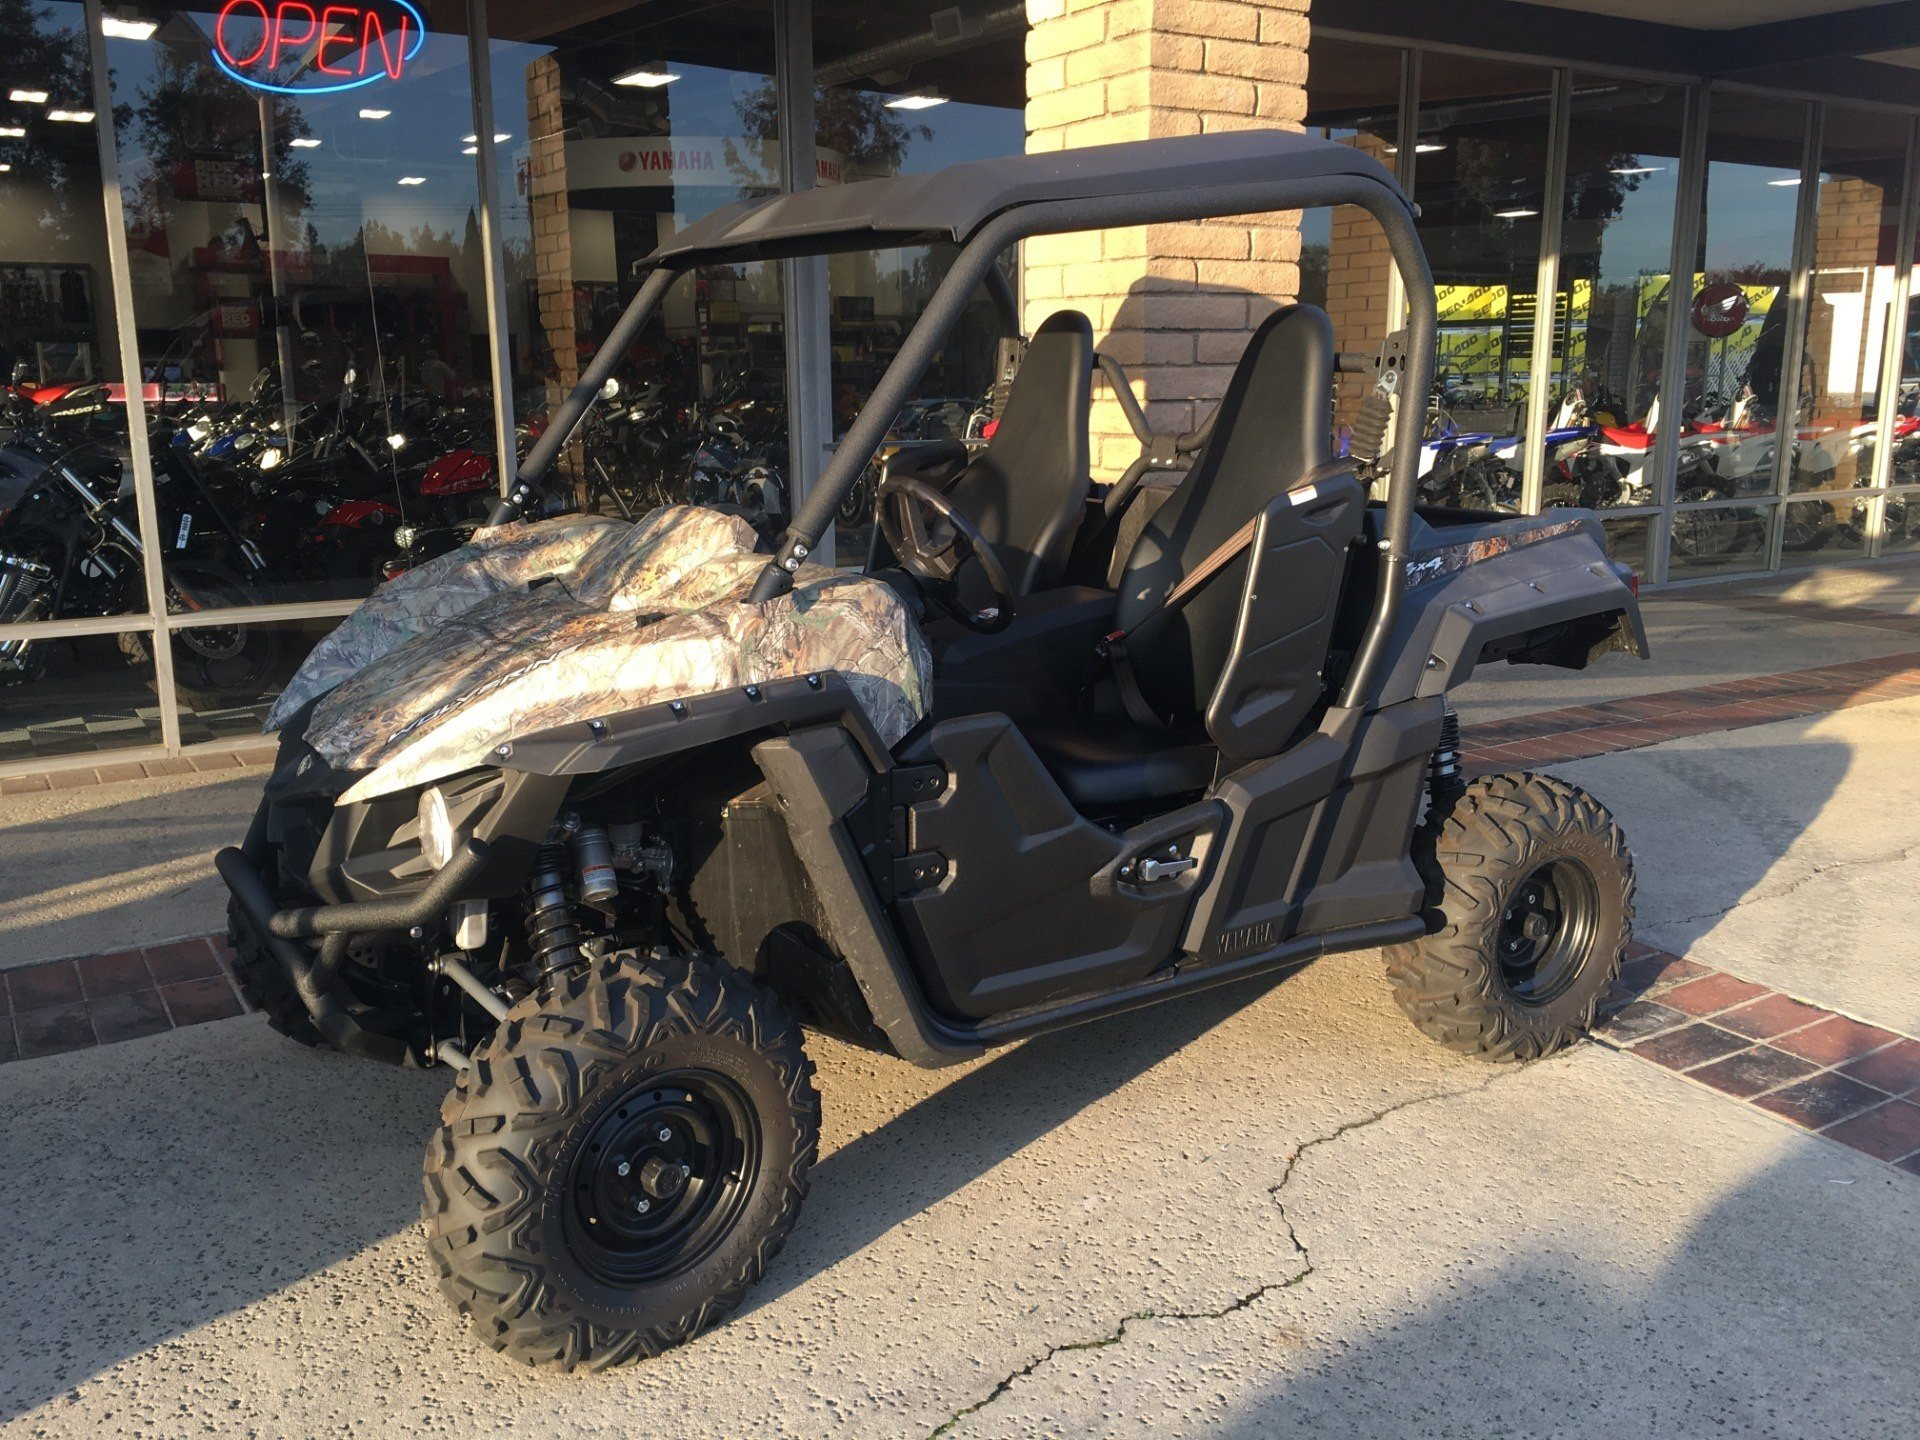 2016 Yamaha Wolverine 700 Motorcycles for Sale ...